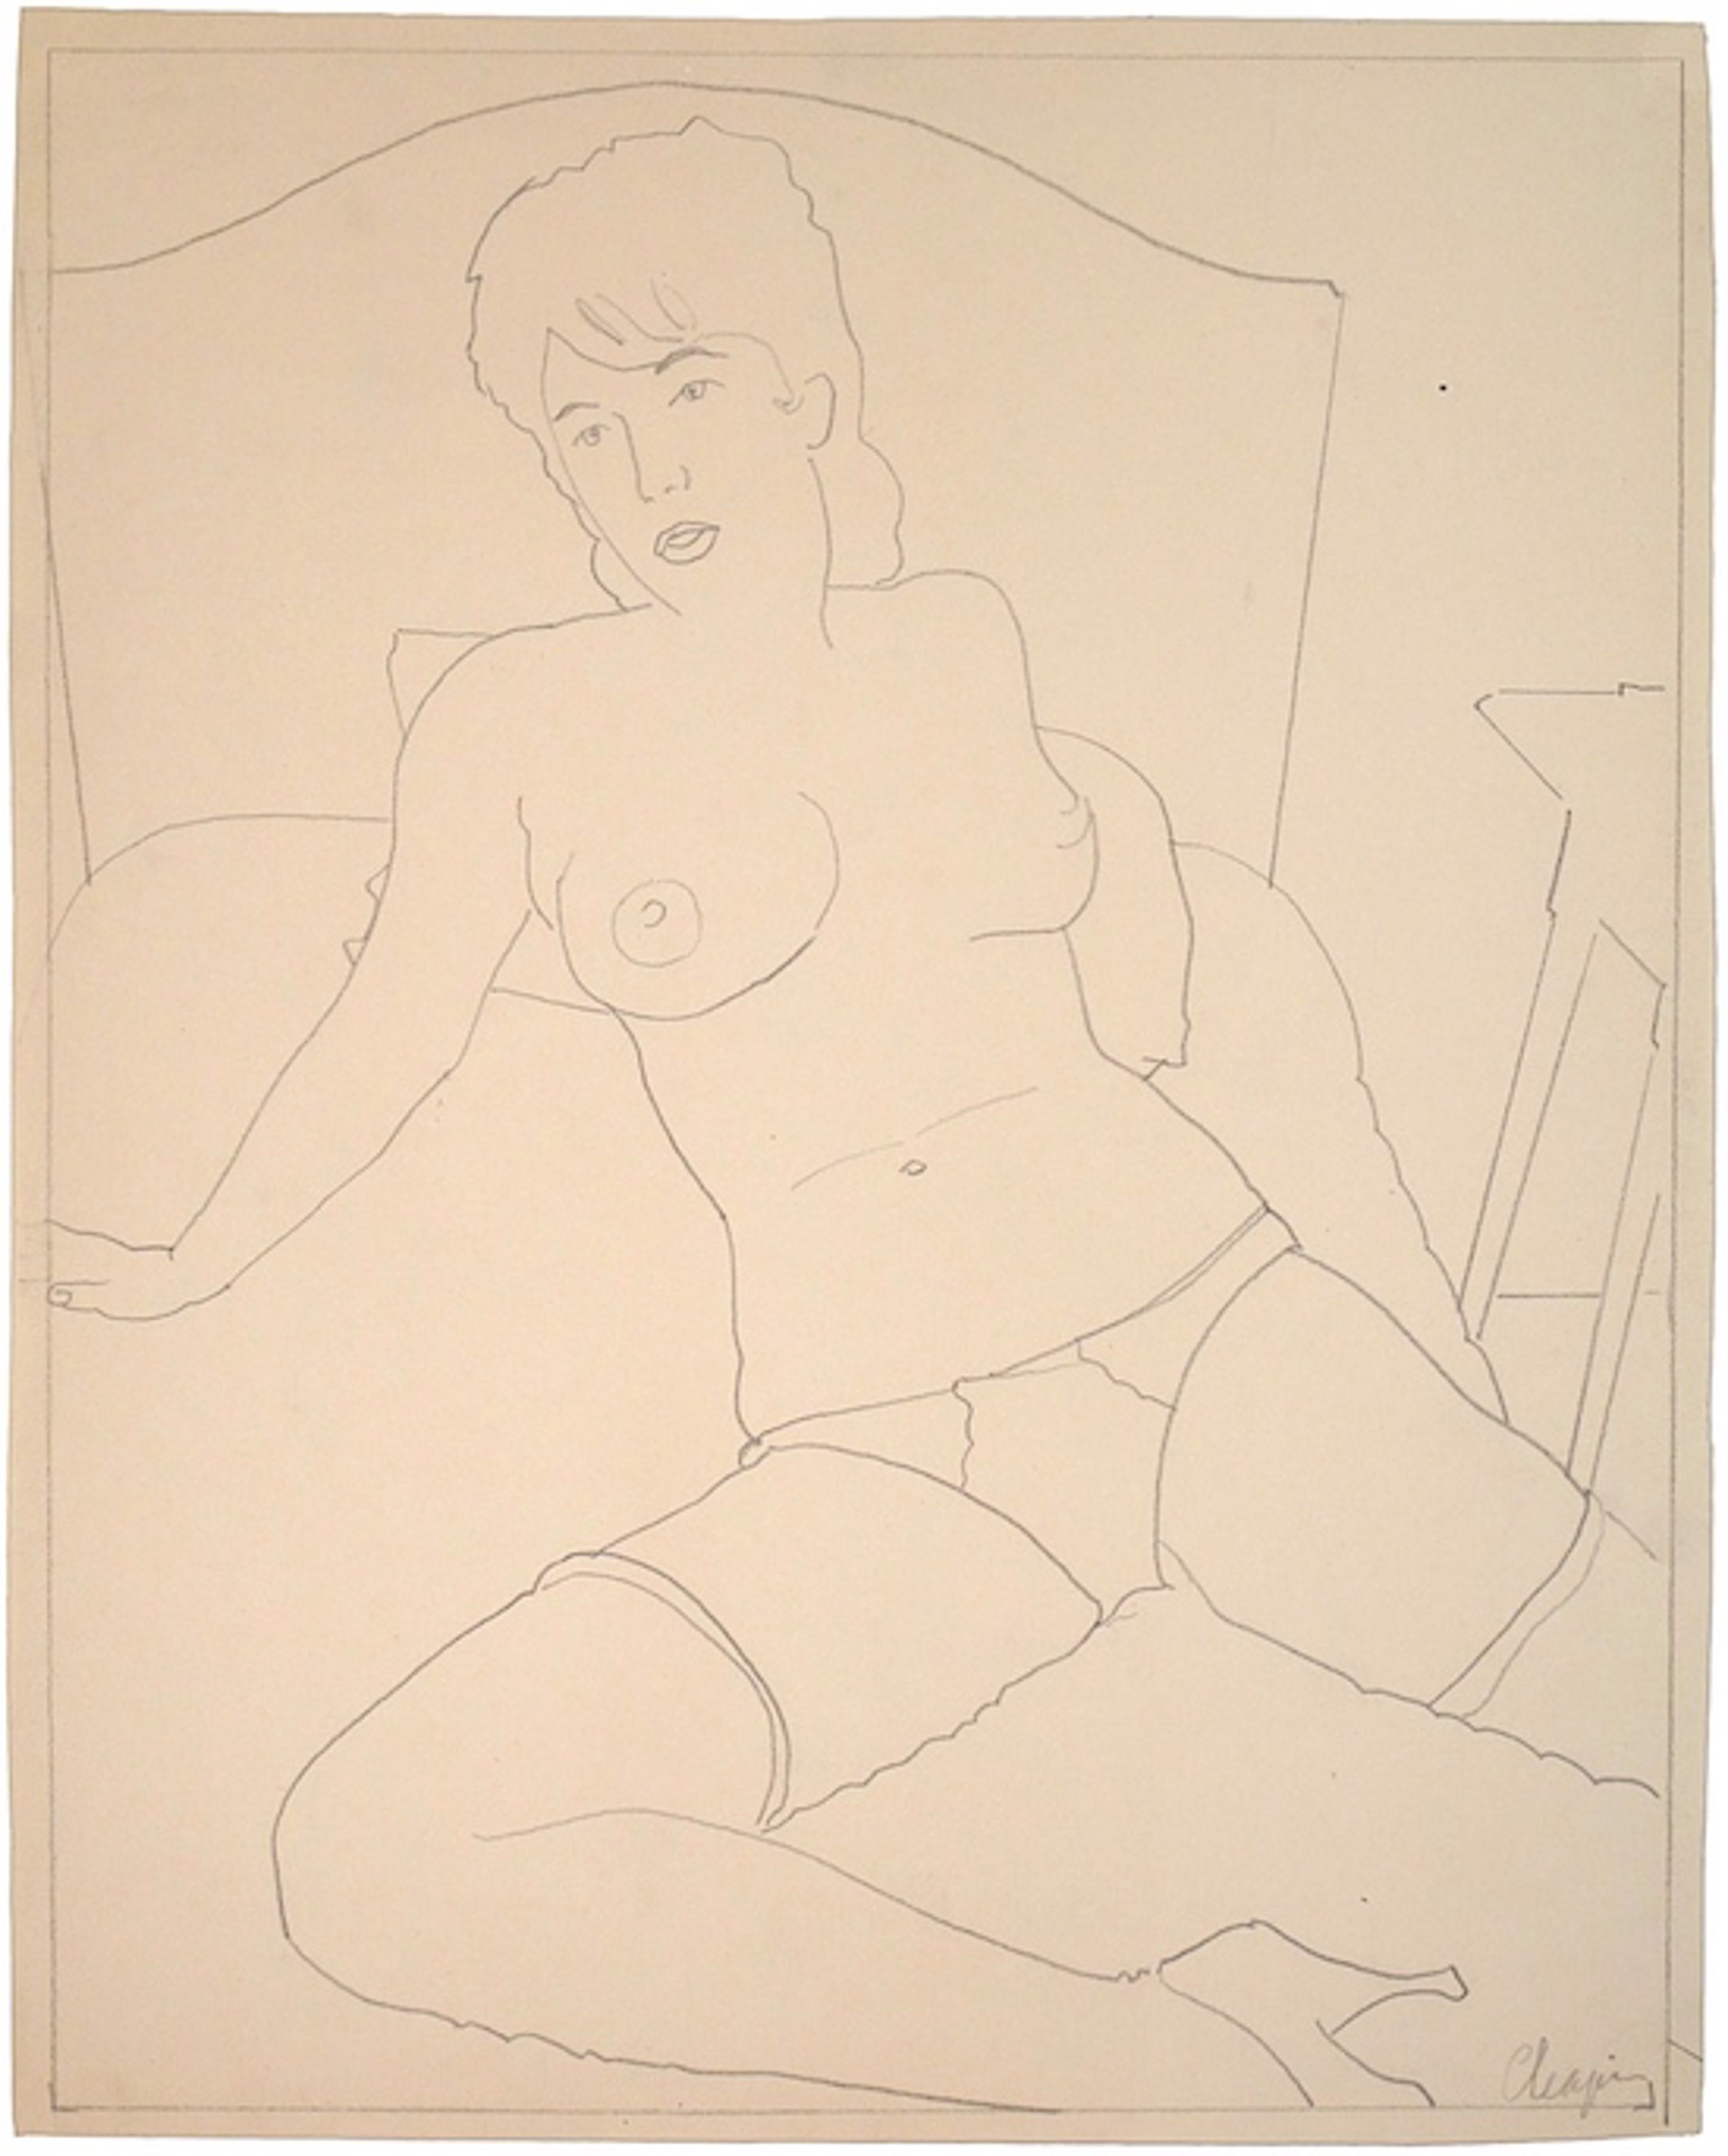 Nude with Headboard and Nightstand by David Chapin